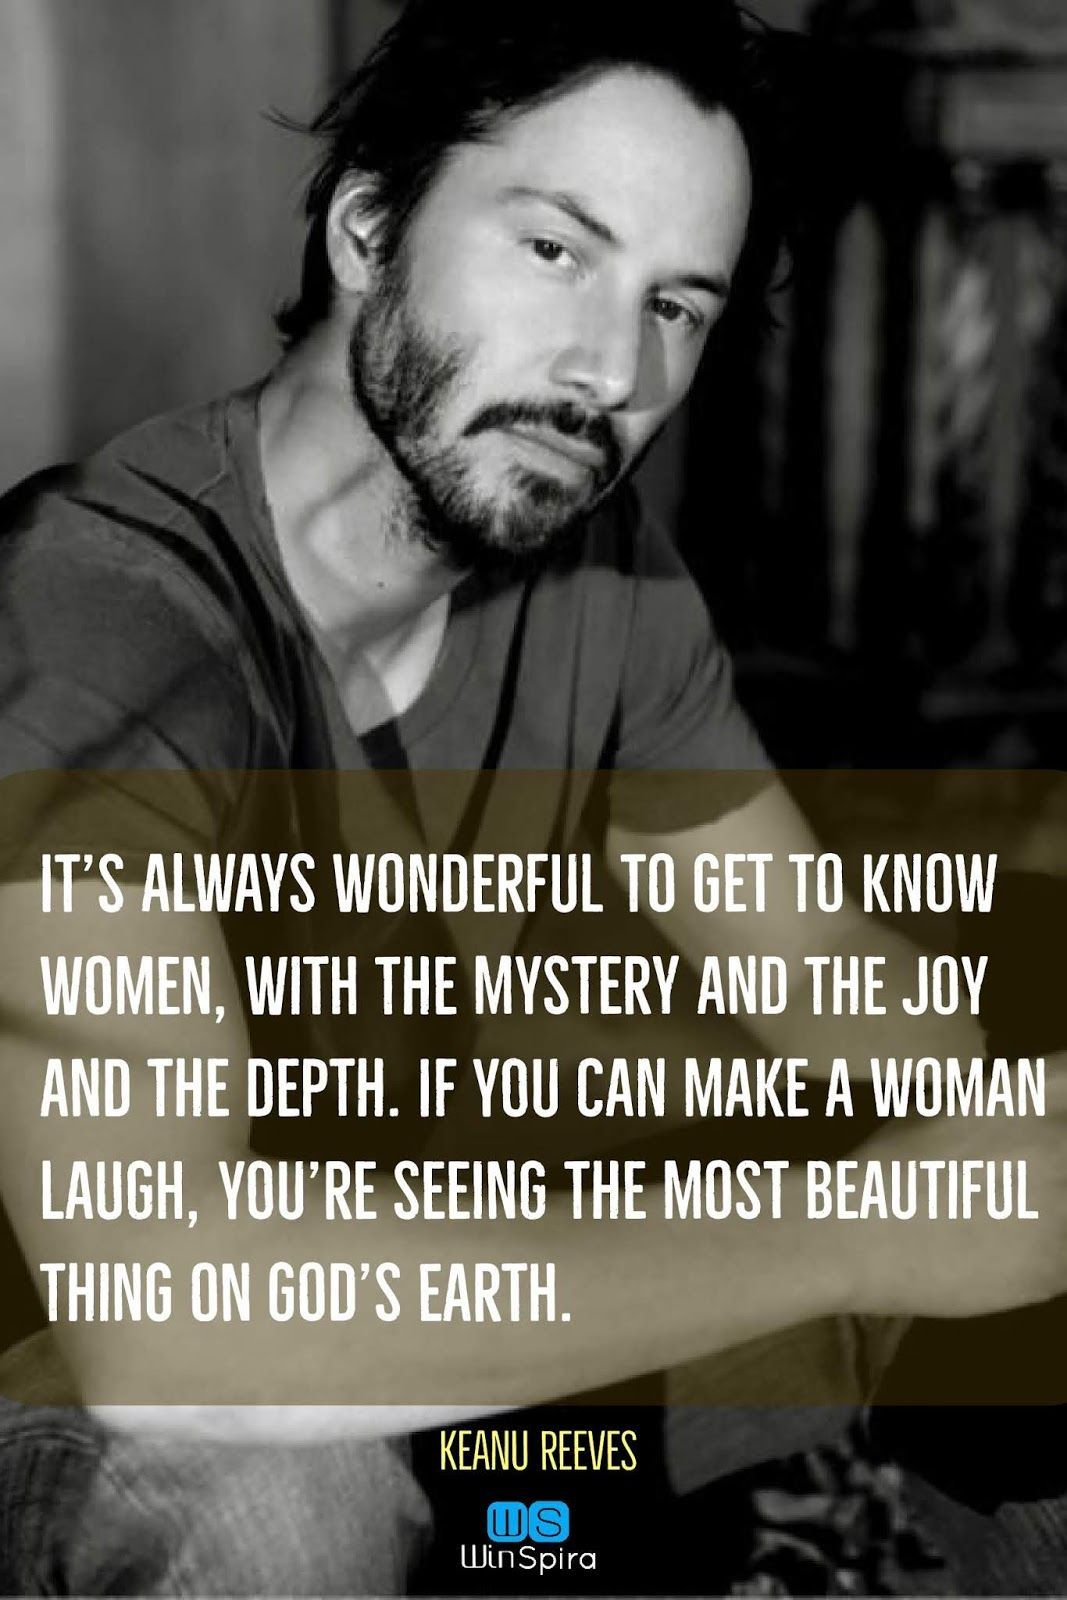 22 Keanu Reeves Quotes About Life And Winspira Keanuwisdom Quotes Johnwick Motivationalquotes Keanu Reeves Quotes Wisdom Quotes Life Quotes